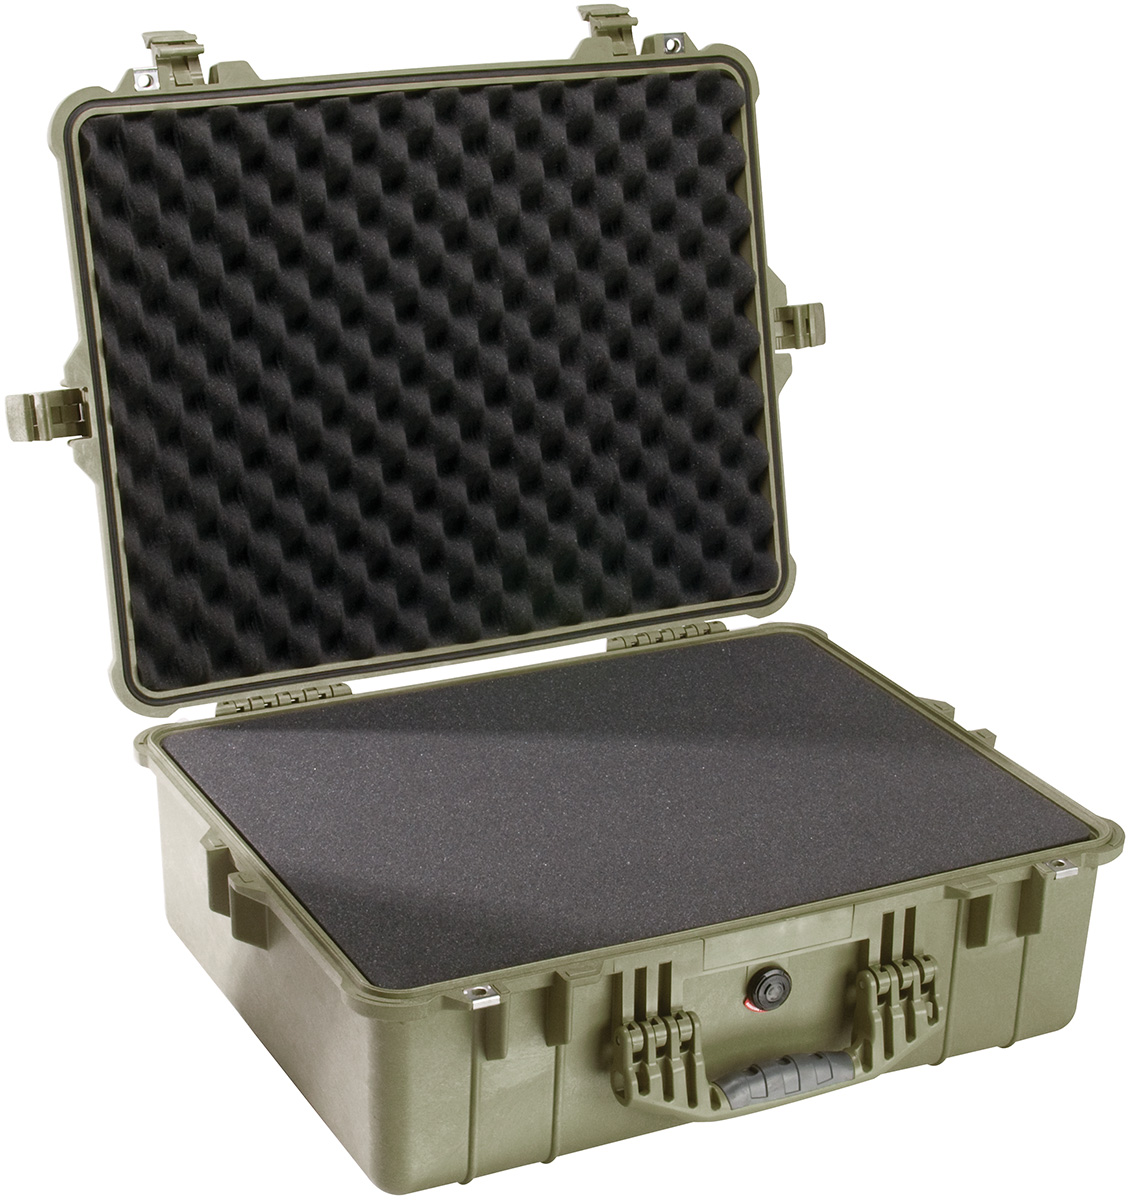 pelican peli products 1600 tough waterproof equipment case